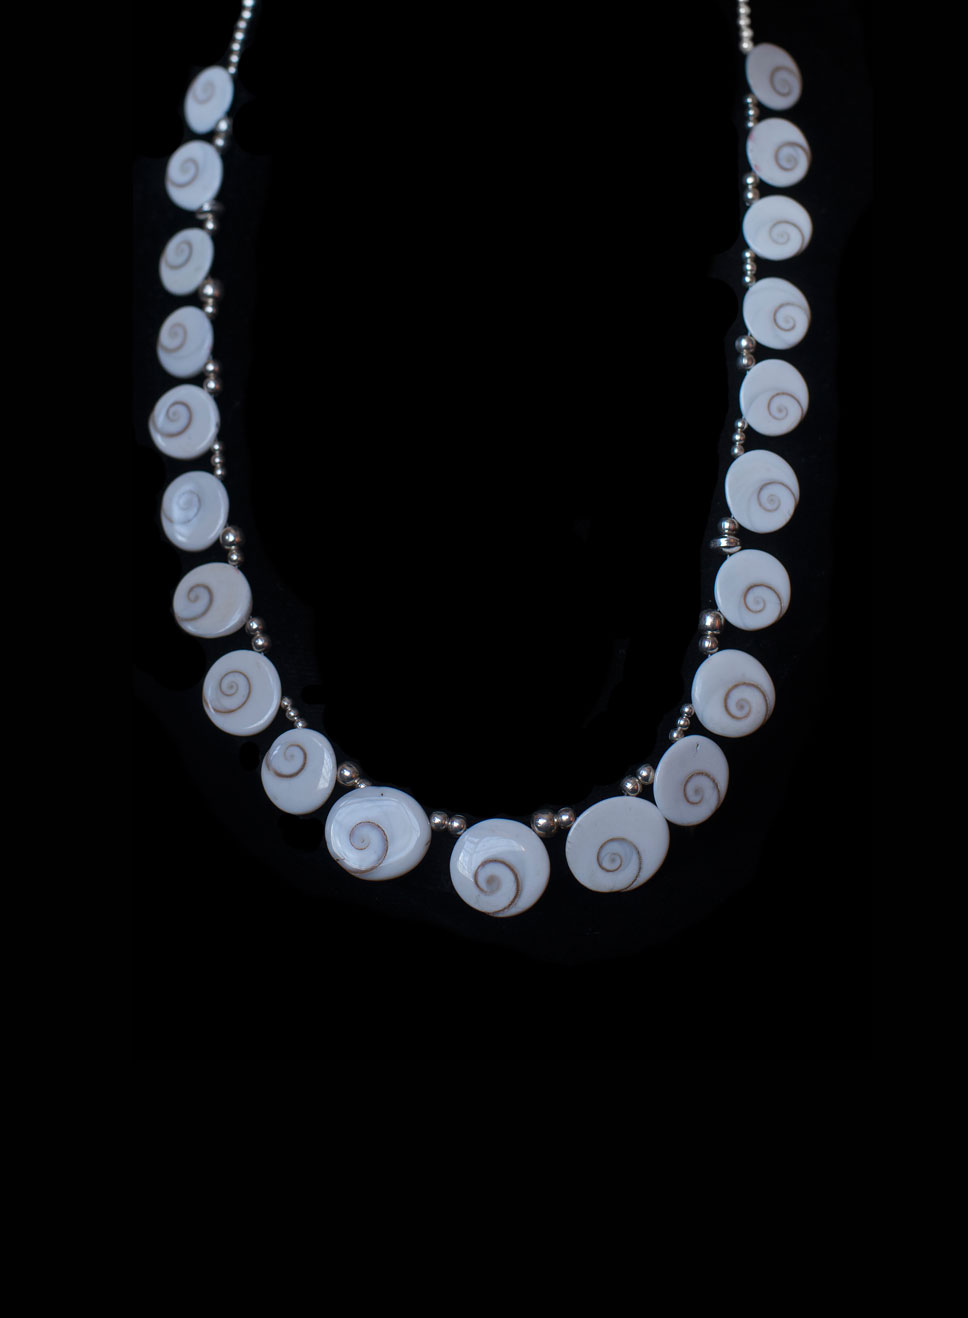 Multi-operculum necklace with silver beads. Necklace length- 45cm.